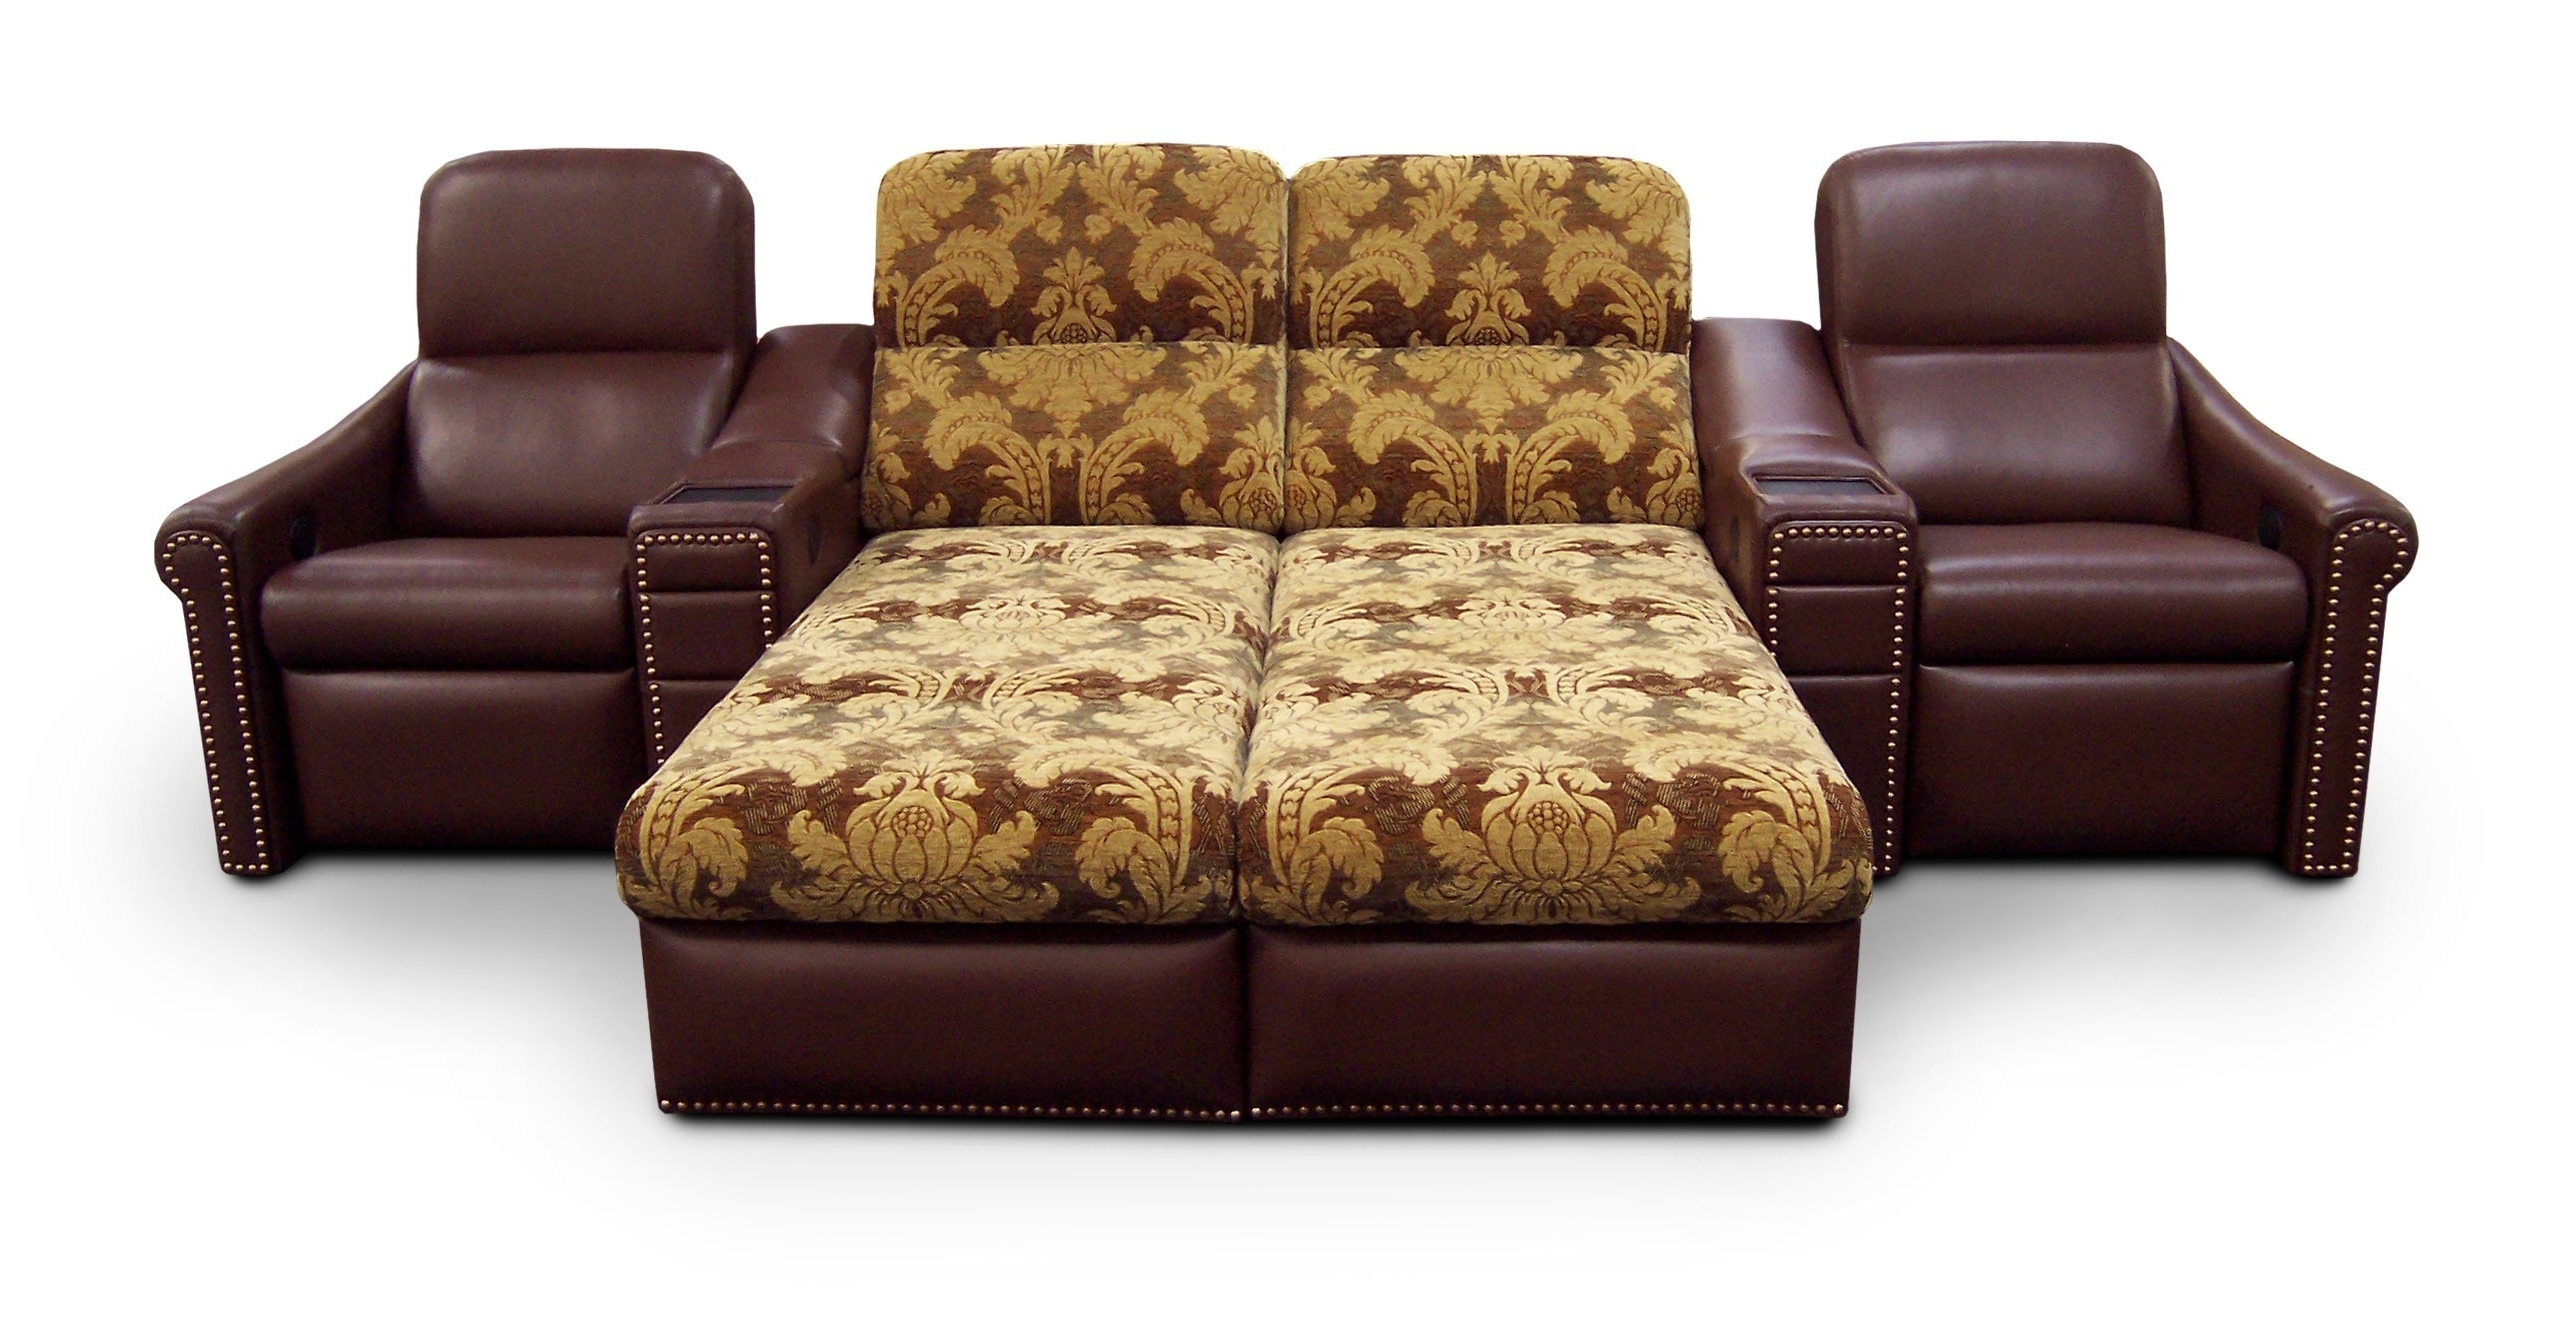 Popular Double Chaise Lounge Sofa Decorators Systems – Surripui Within Double Chaise Lounges For Living Room (View 11 of 15)